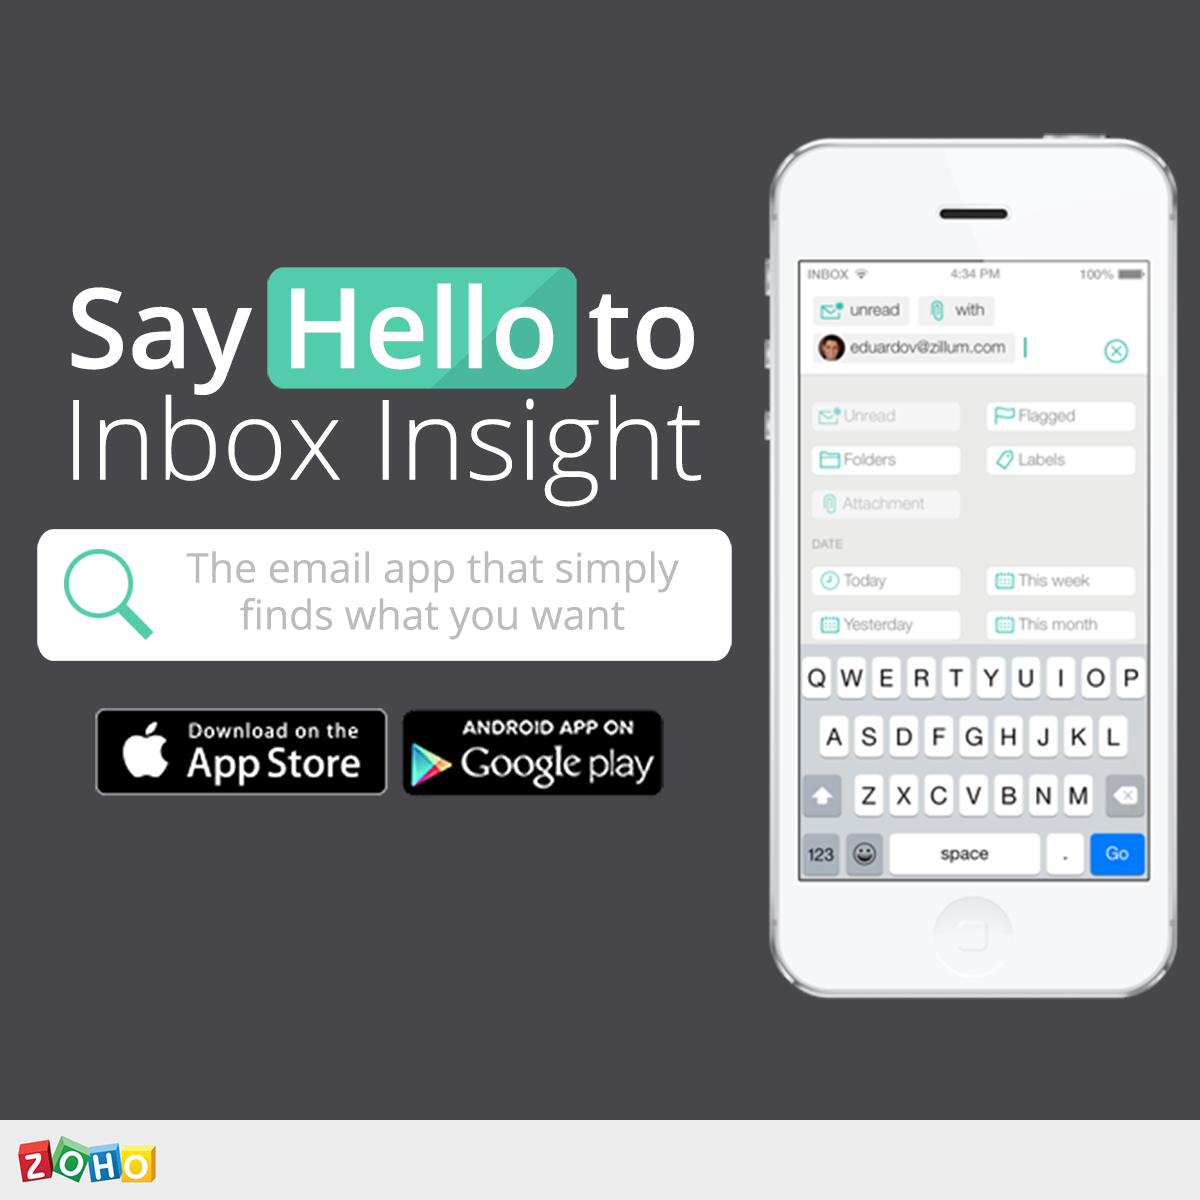 Introducing Inbox Insight: A Search Engine For Your Inbox